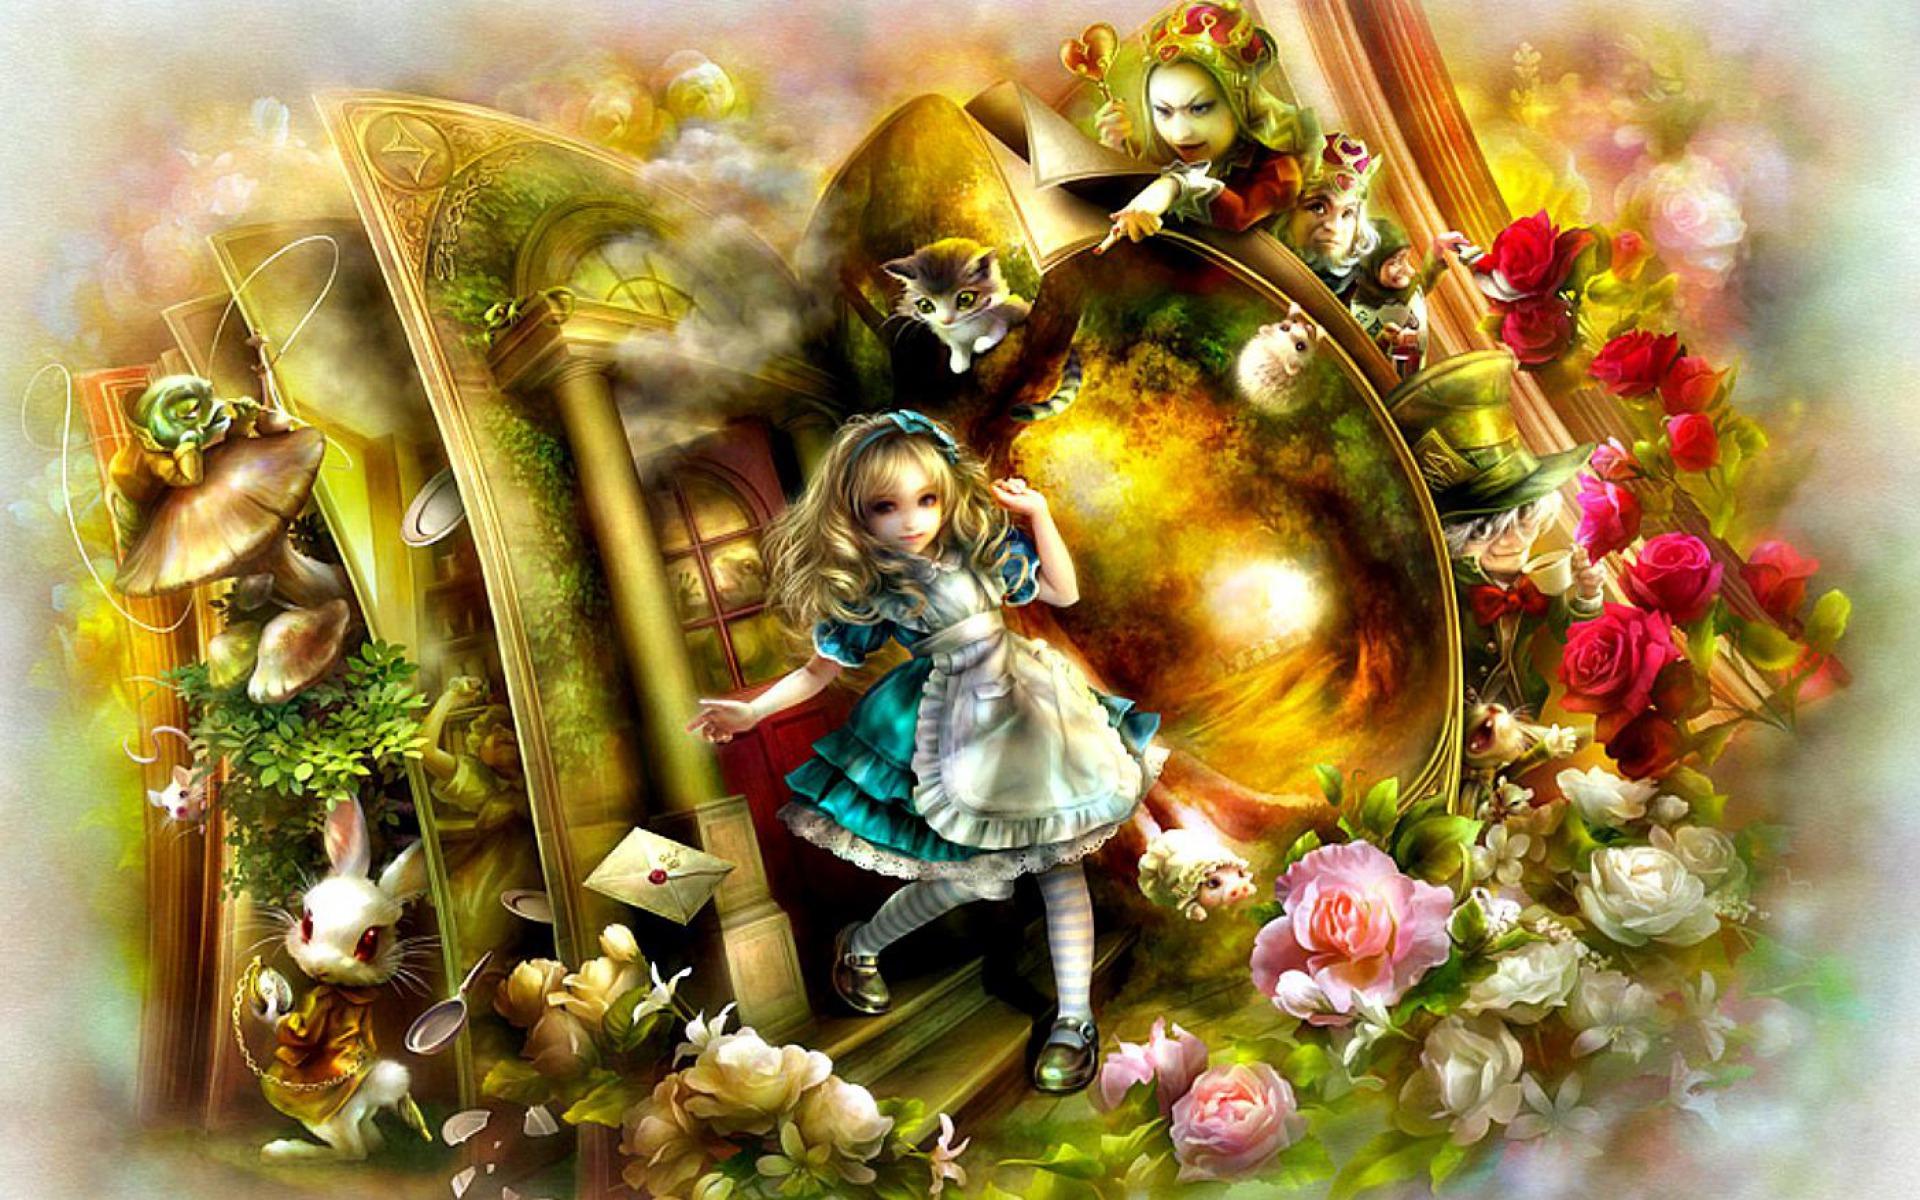 Brunette Girl Wallpapers Cartoon Alice Im Wunderland Hintergrundbilder Alice Im